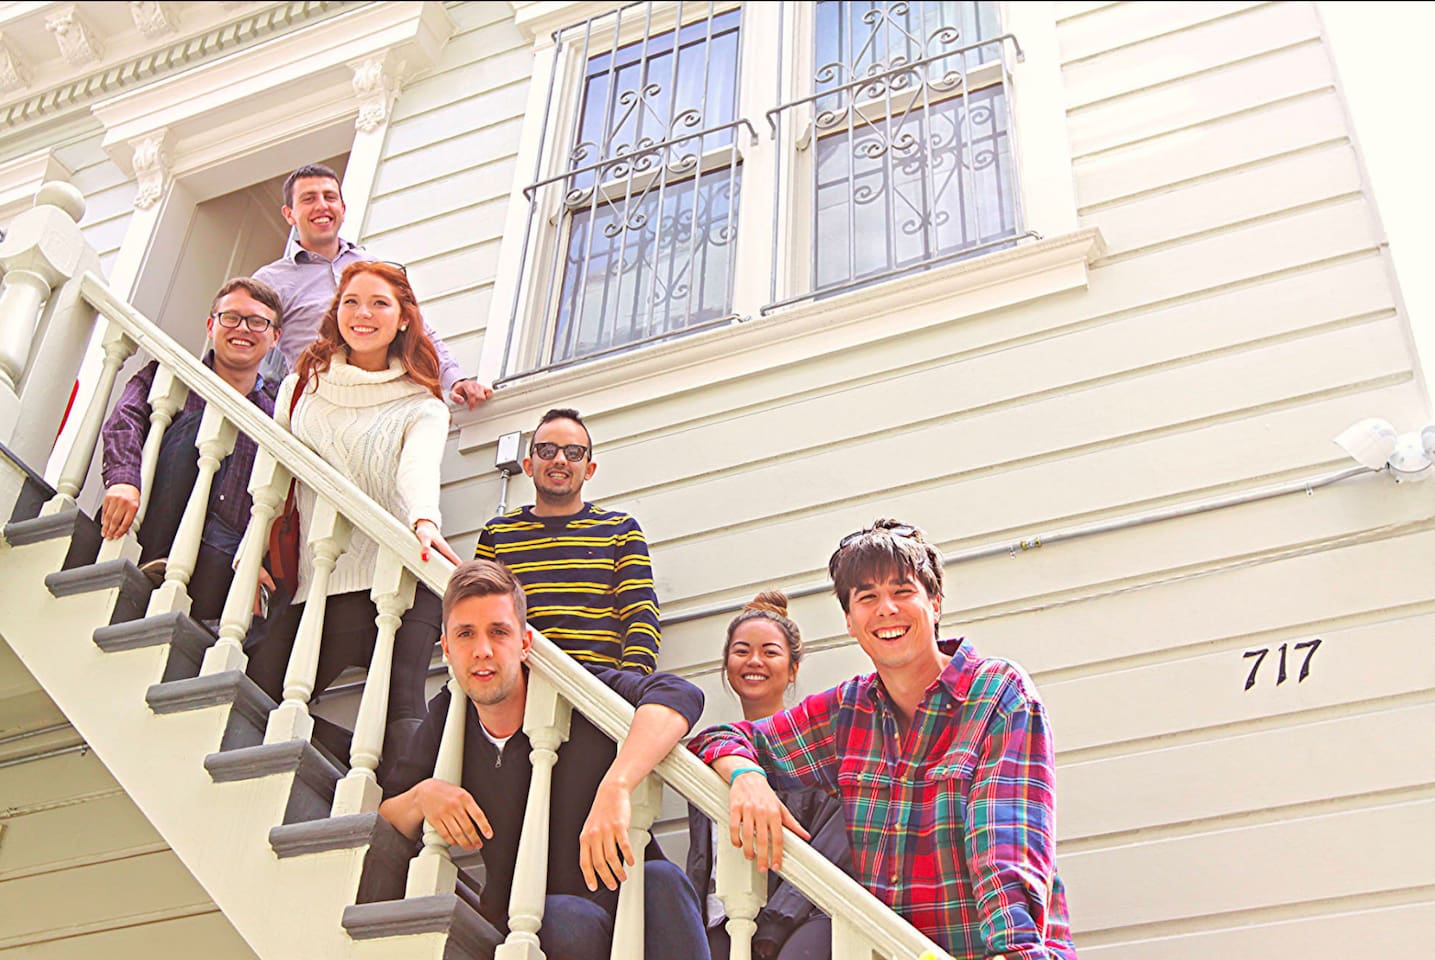 You new cosy lounge to change the world during the day and have fun at night in the centre of San Francisco, California. Let's have an impact!